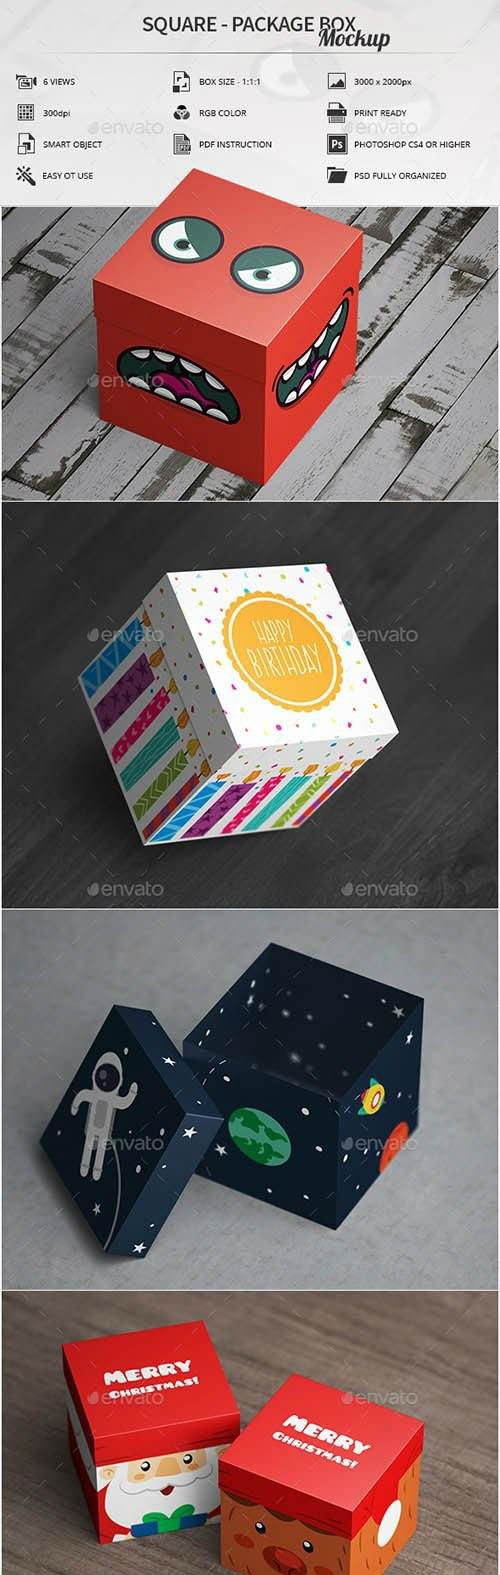 Package Box Mockup - 16435967